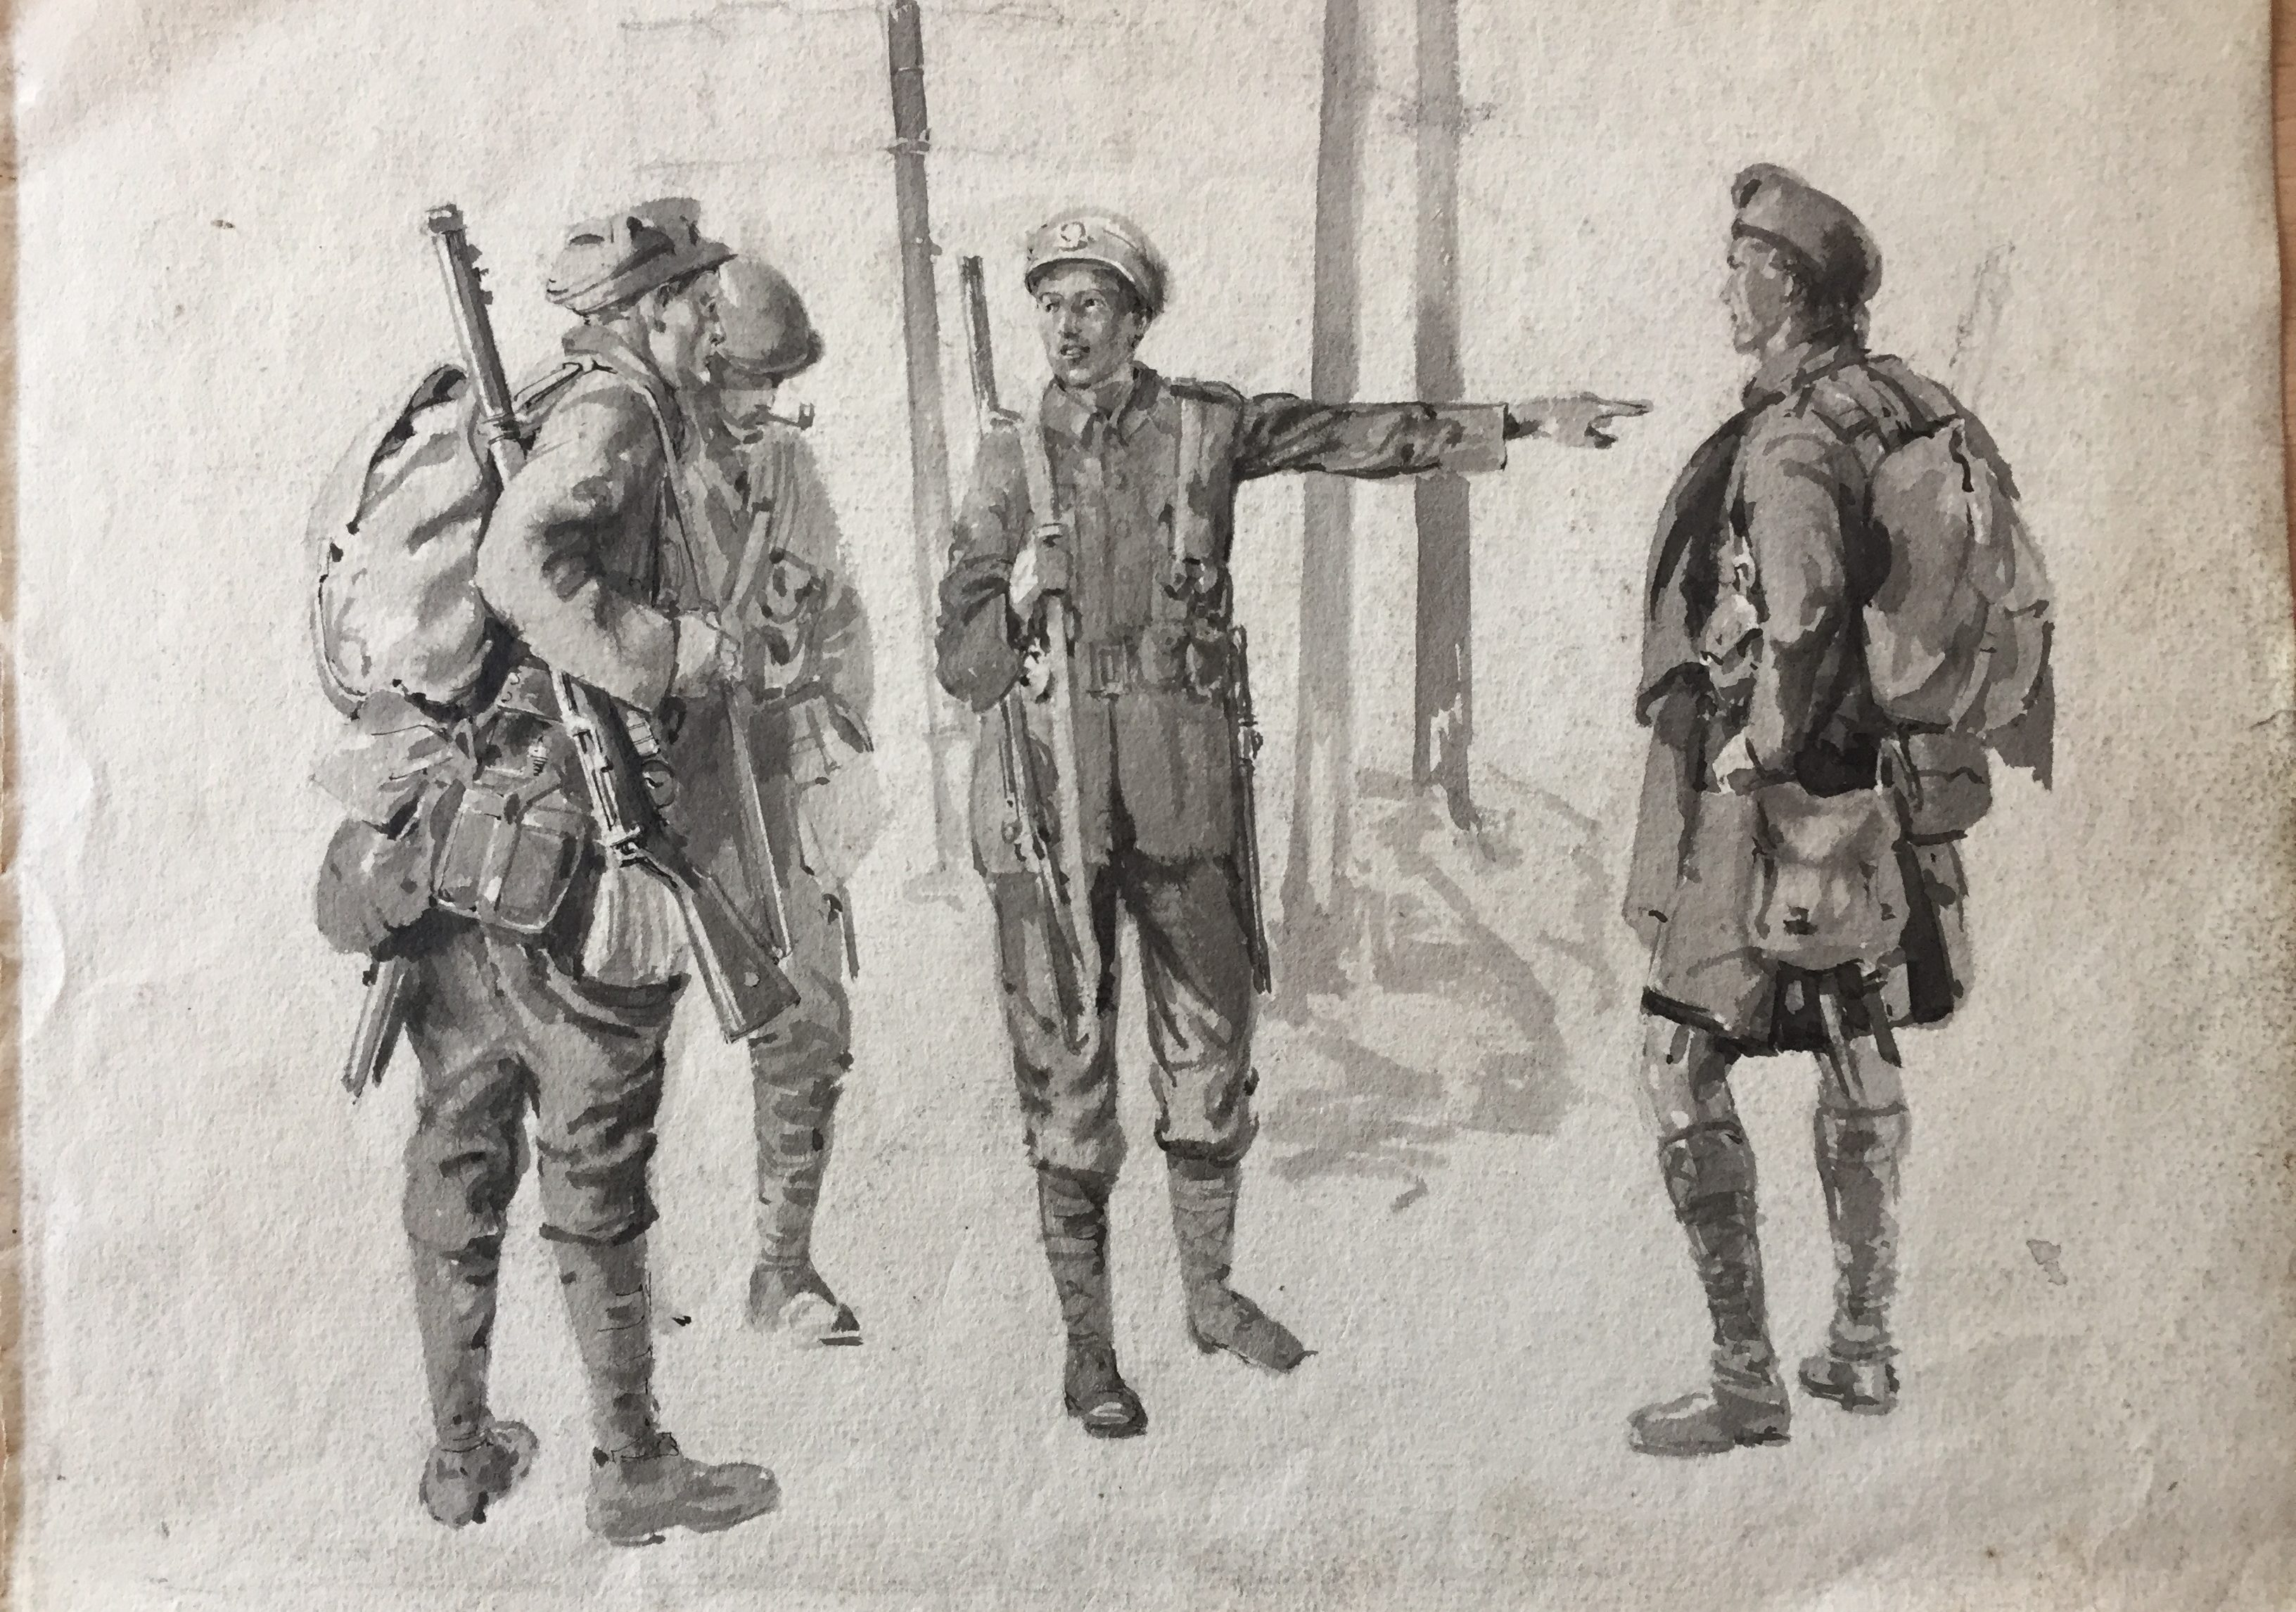 Excerpt from Great War Watercolours Collection